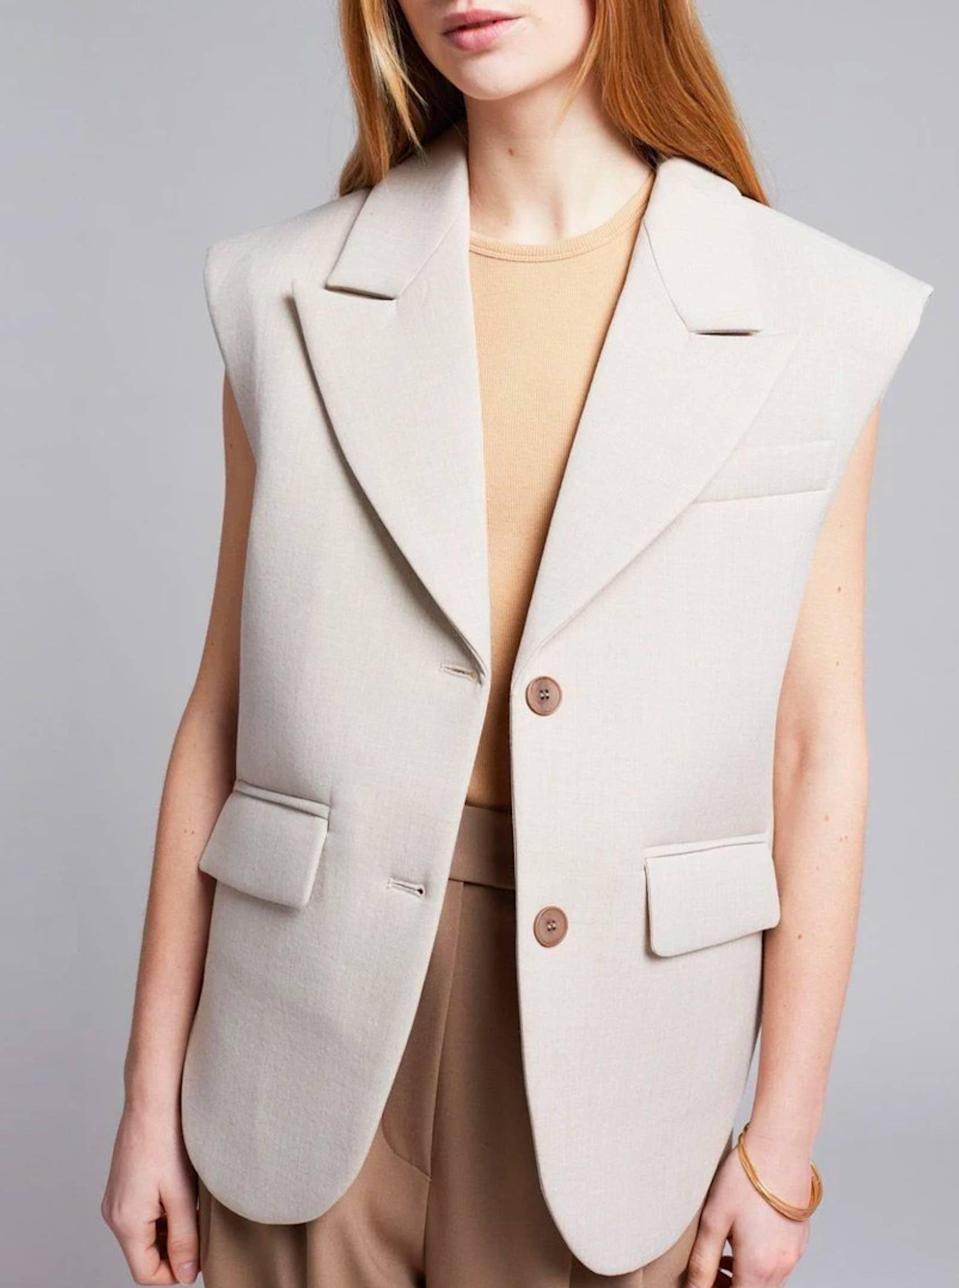 """$179, The Frankie Shop. <a href=""""https://thefrankieshop.com/products/mari-padded-tailored-vest-peyote"""" rel=""""nofollow noopener"""" target=""""_blank"""" data-ylk=""""slk:Get it now!"""" class=""""link rapid-noclick-resp"""">Get it now!</a>"""